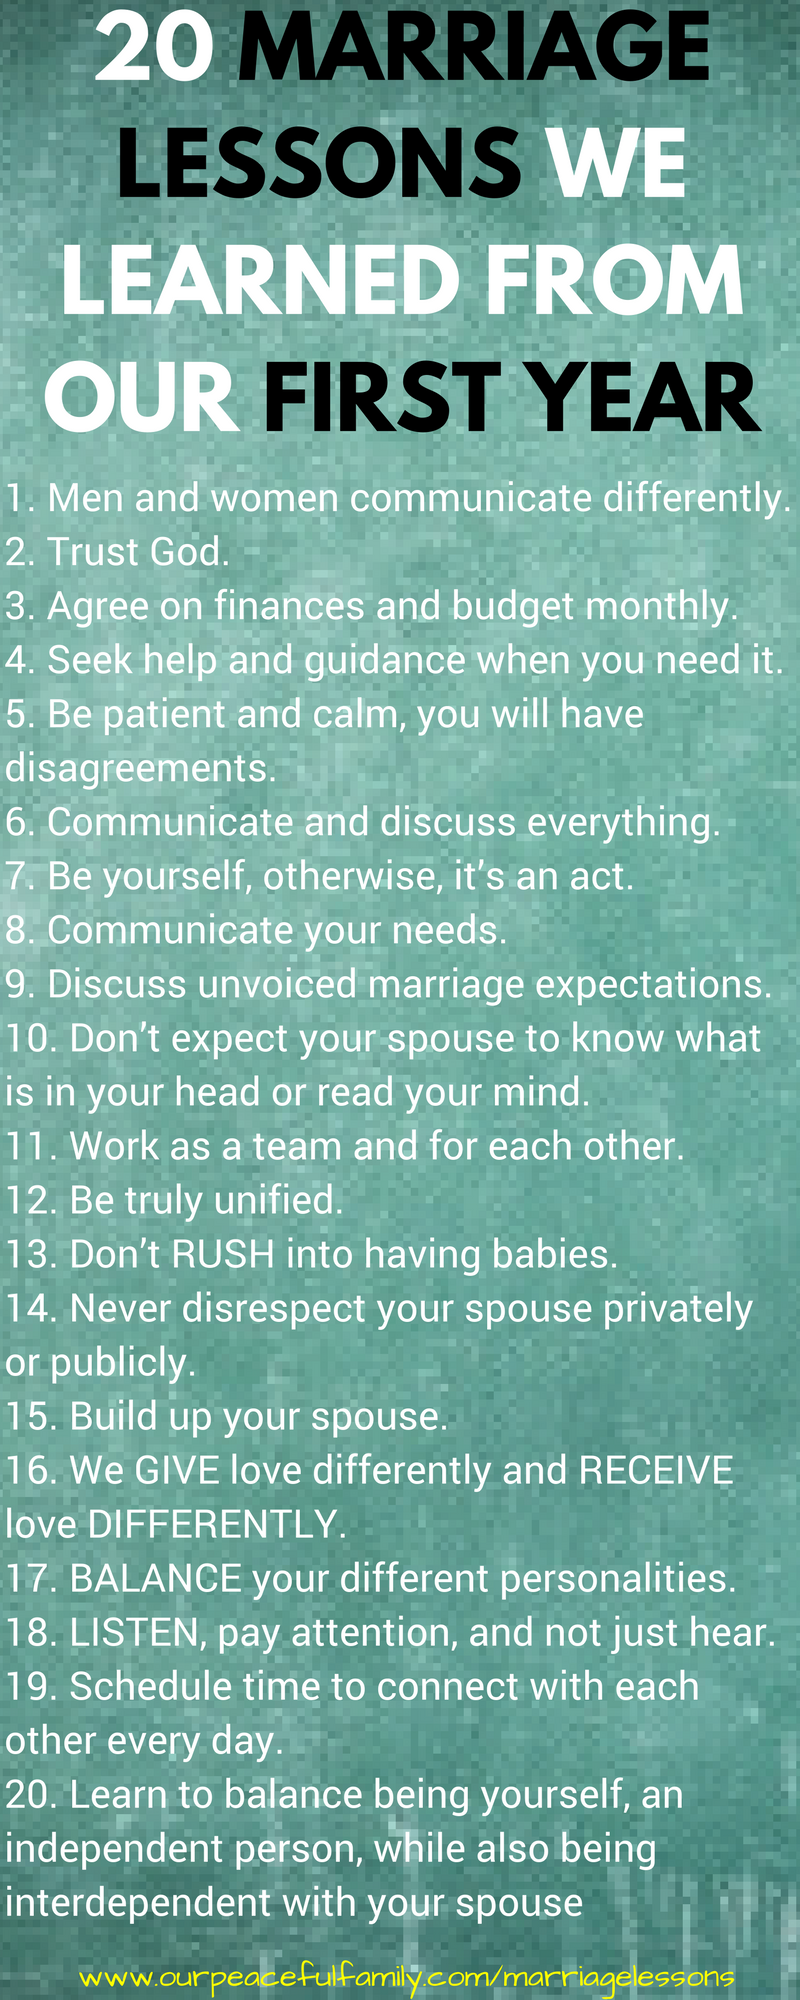 20 Marriage Lessons We Learned From Our First Year of